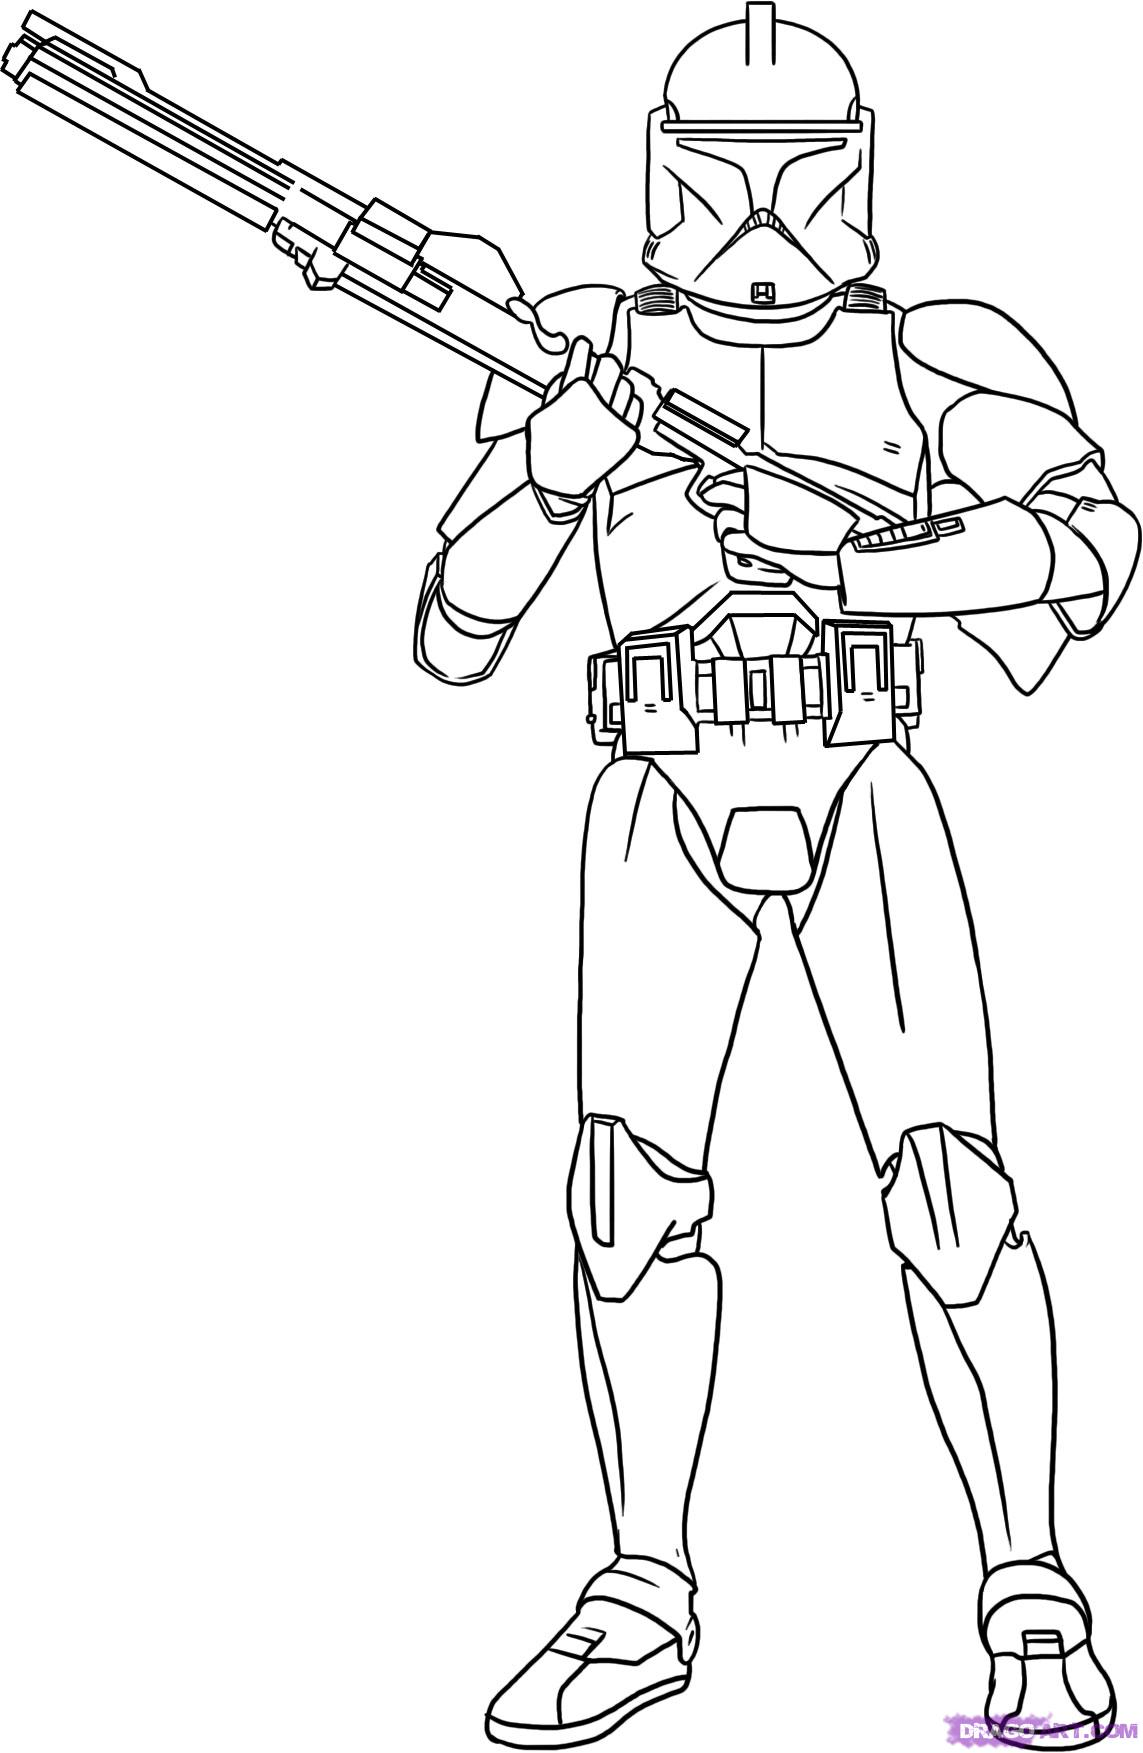 clone wars coloring pages | Just Colorings